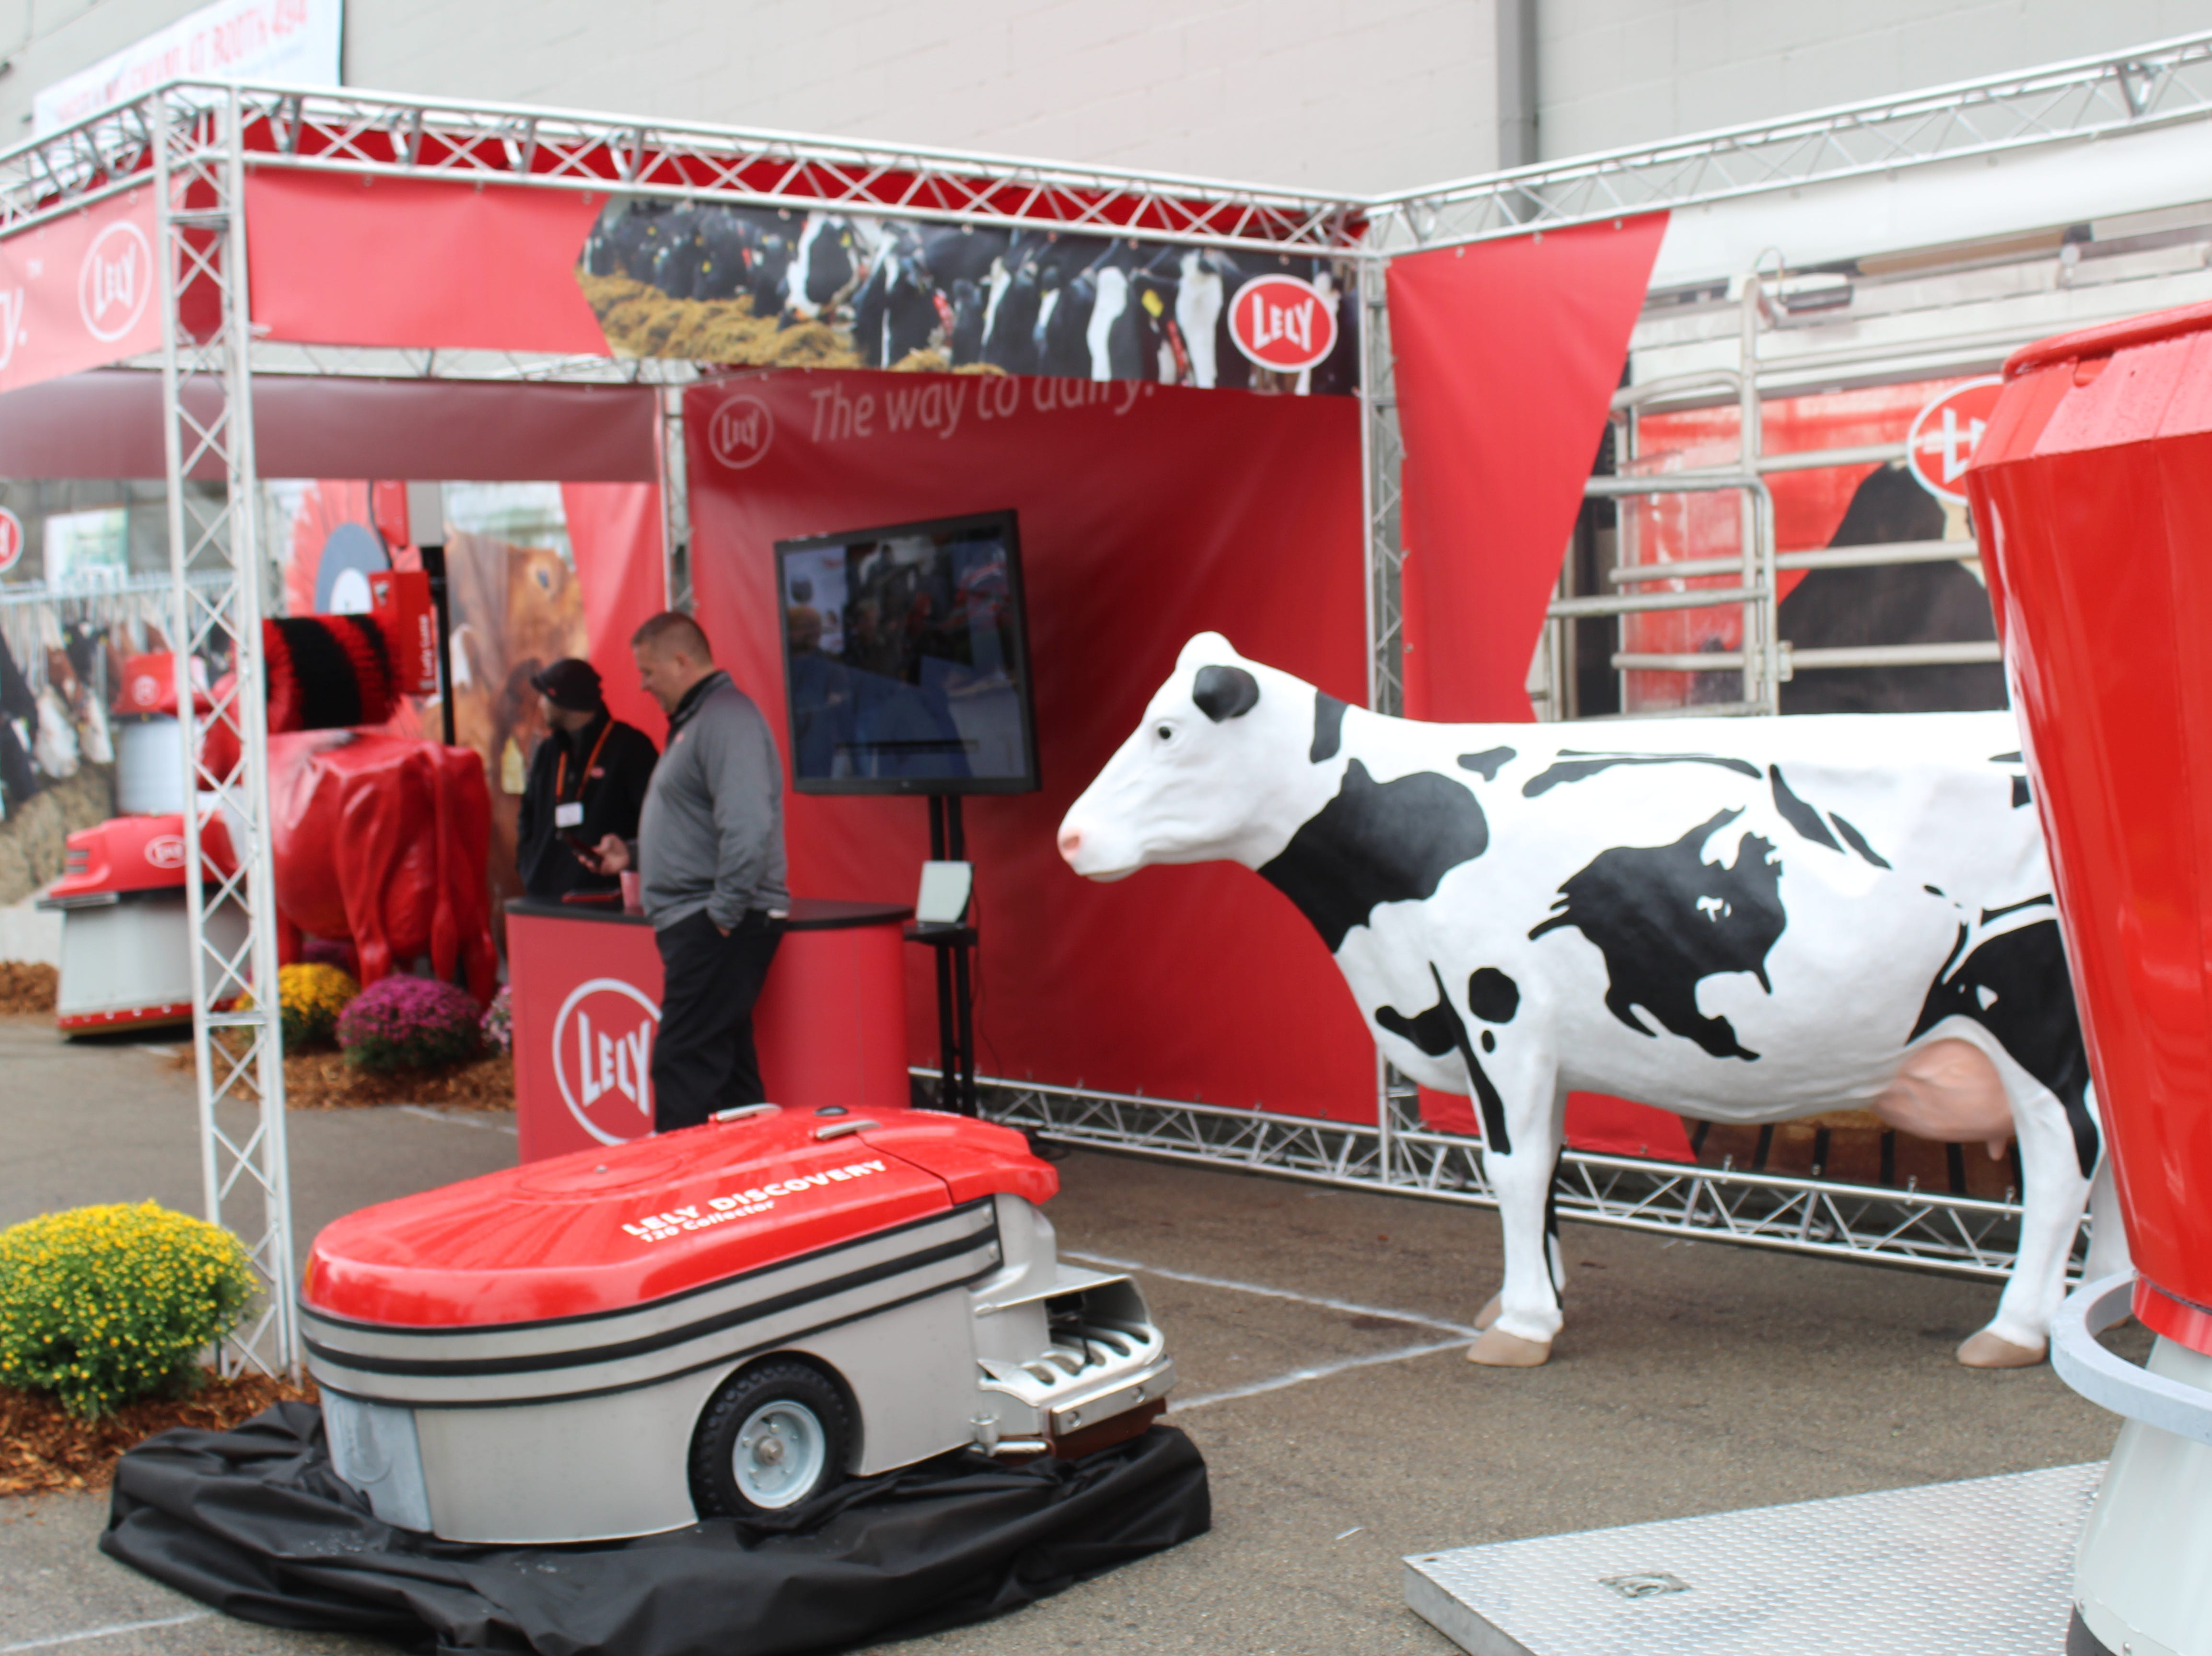 A Lely robotic display outside the arena.